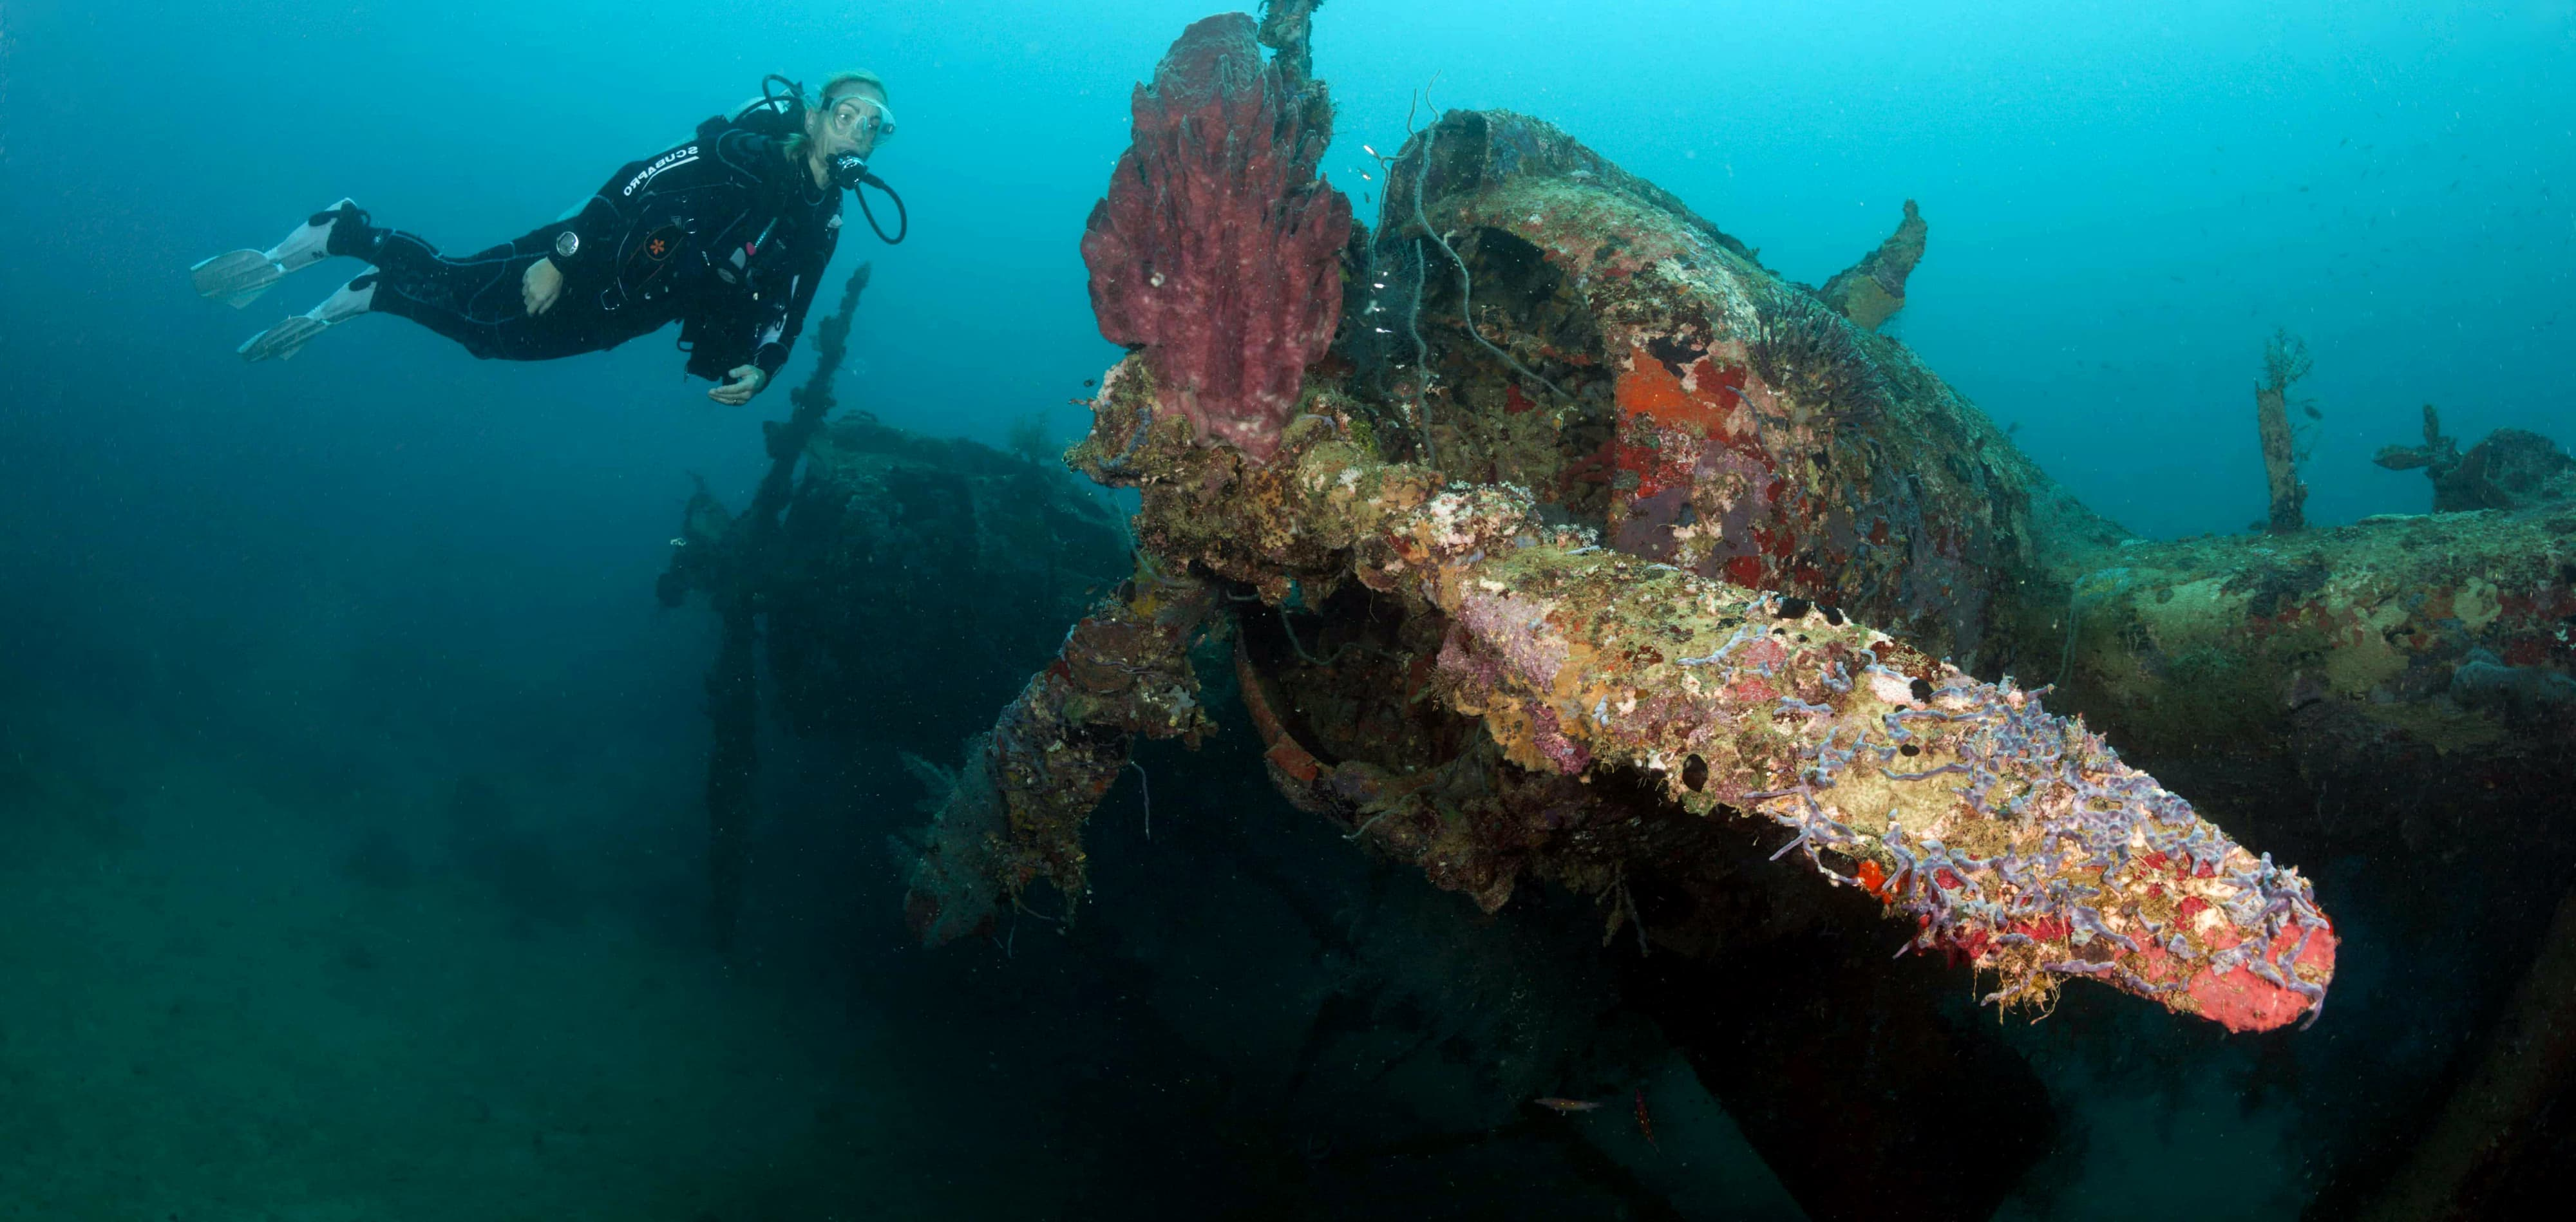 Kawanishi H6K5 Flyingboat Wreck, Nggela (Florida) Islands, Solomon Islands (Photo: Prisma Bildagentur/Getty)